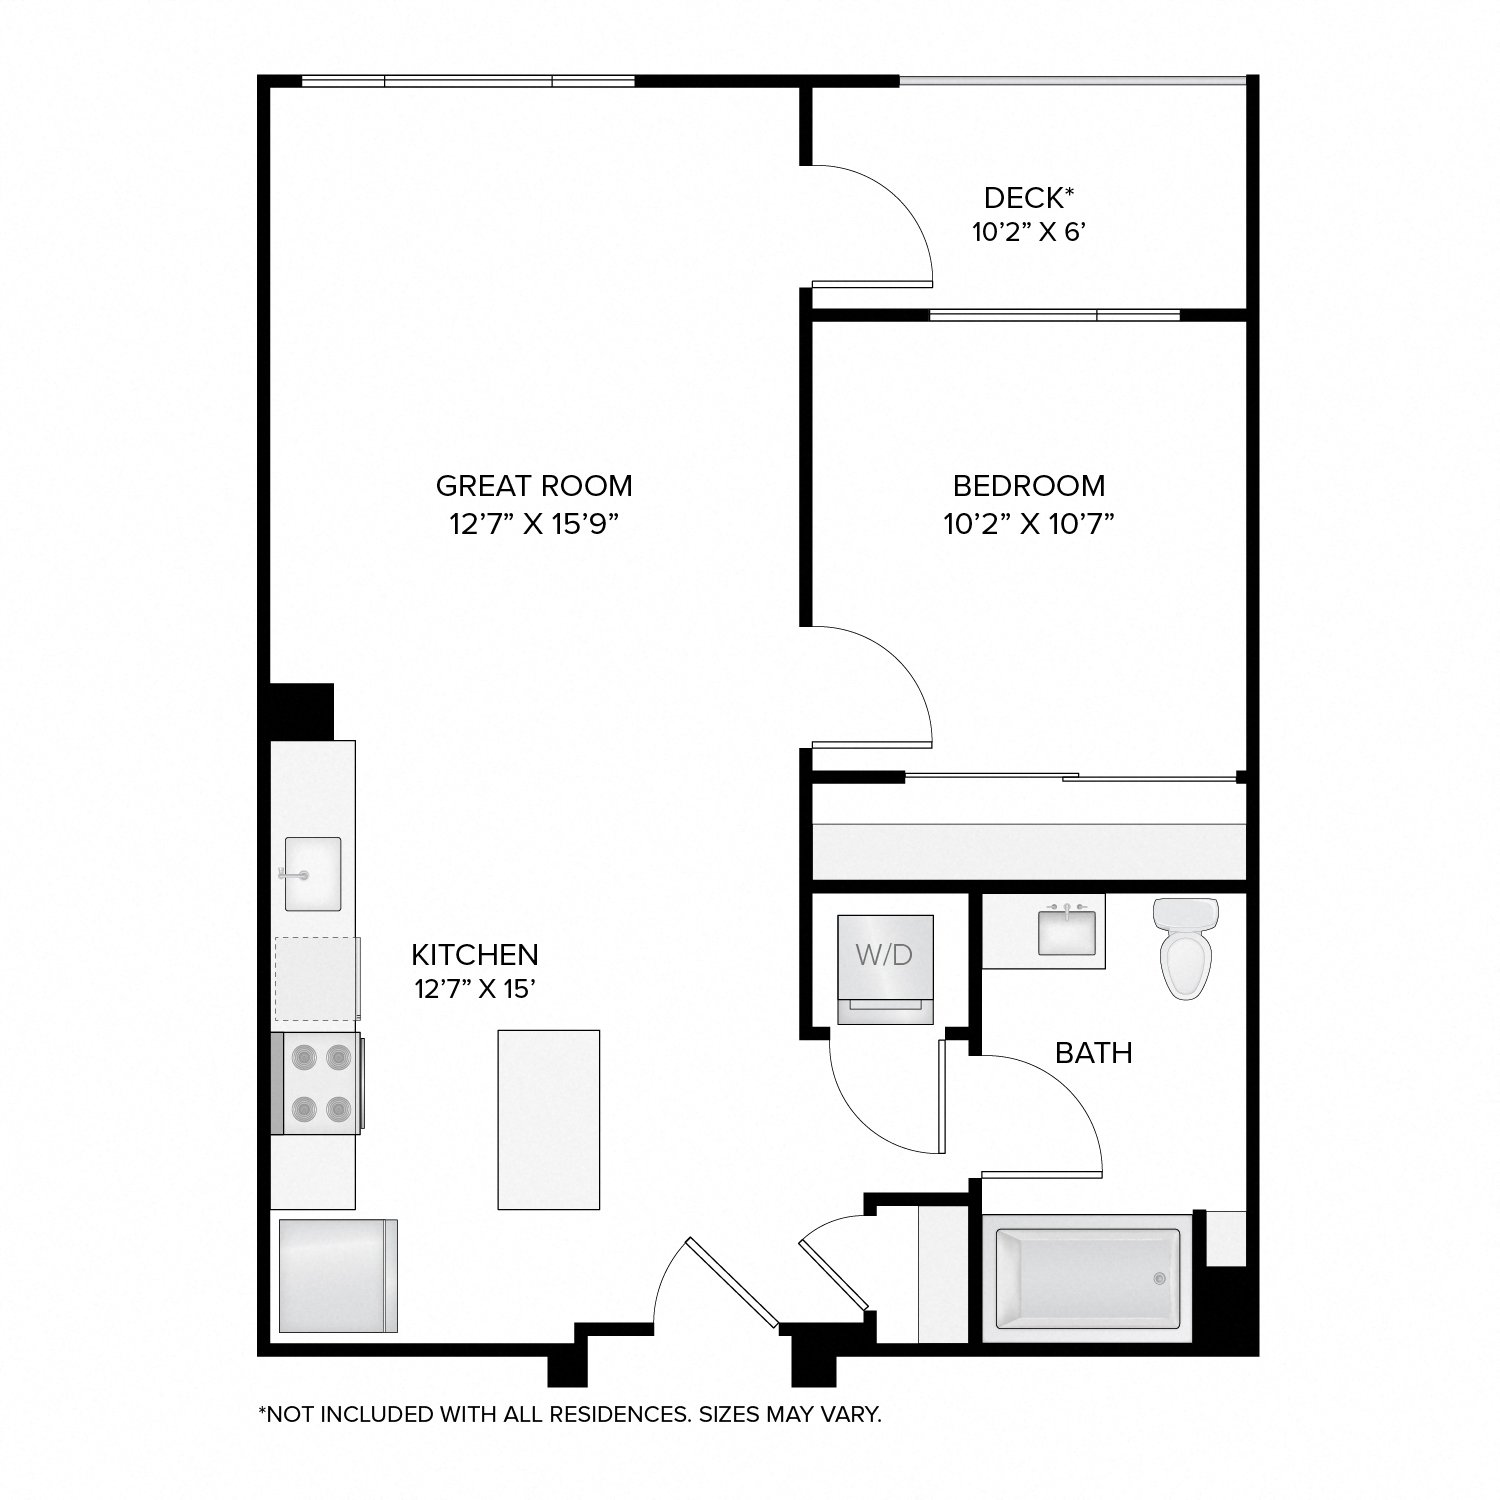 Diagram of the Franklin Classic floor plan. One bedroom, one bathroom, an open kitchen and living area, a washer dryer, and in select residences, a deck.